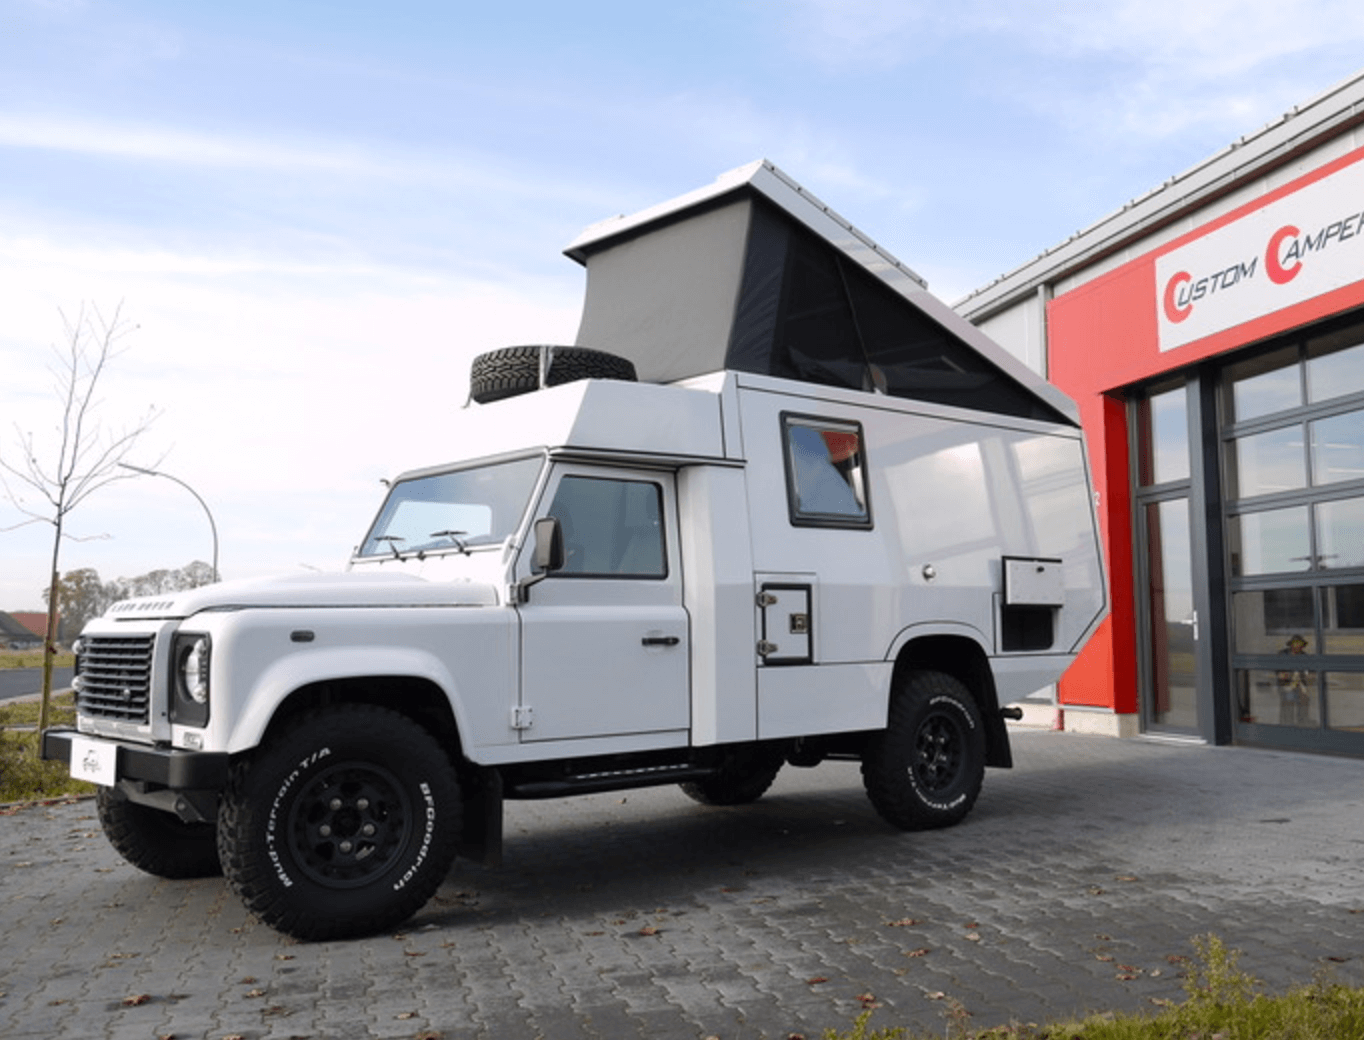 Land Rover Defender 130 Camper 2015 13500 miles – UK – £79,000